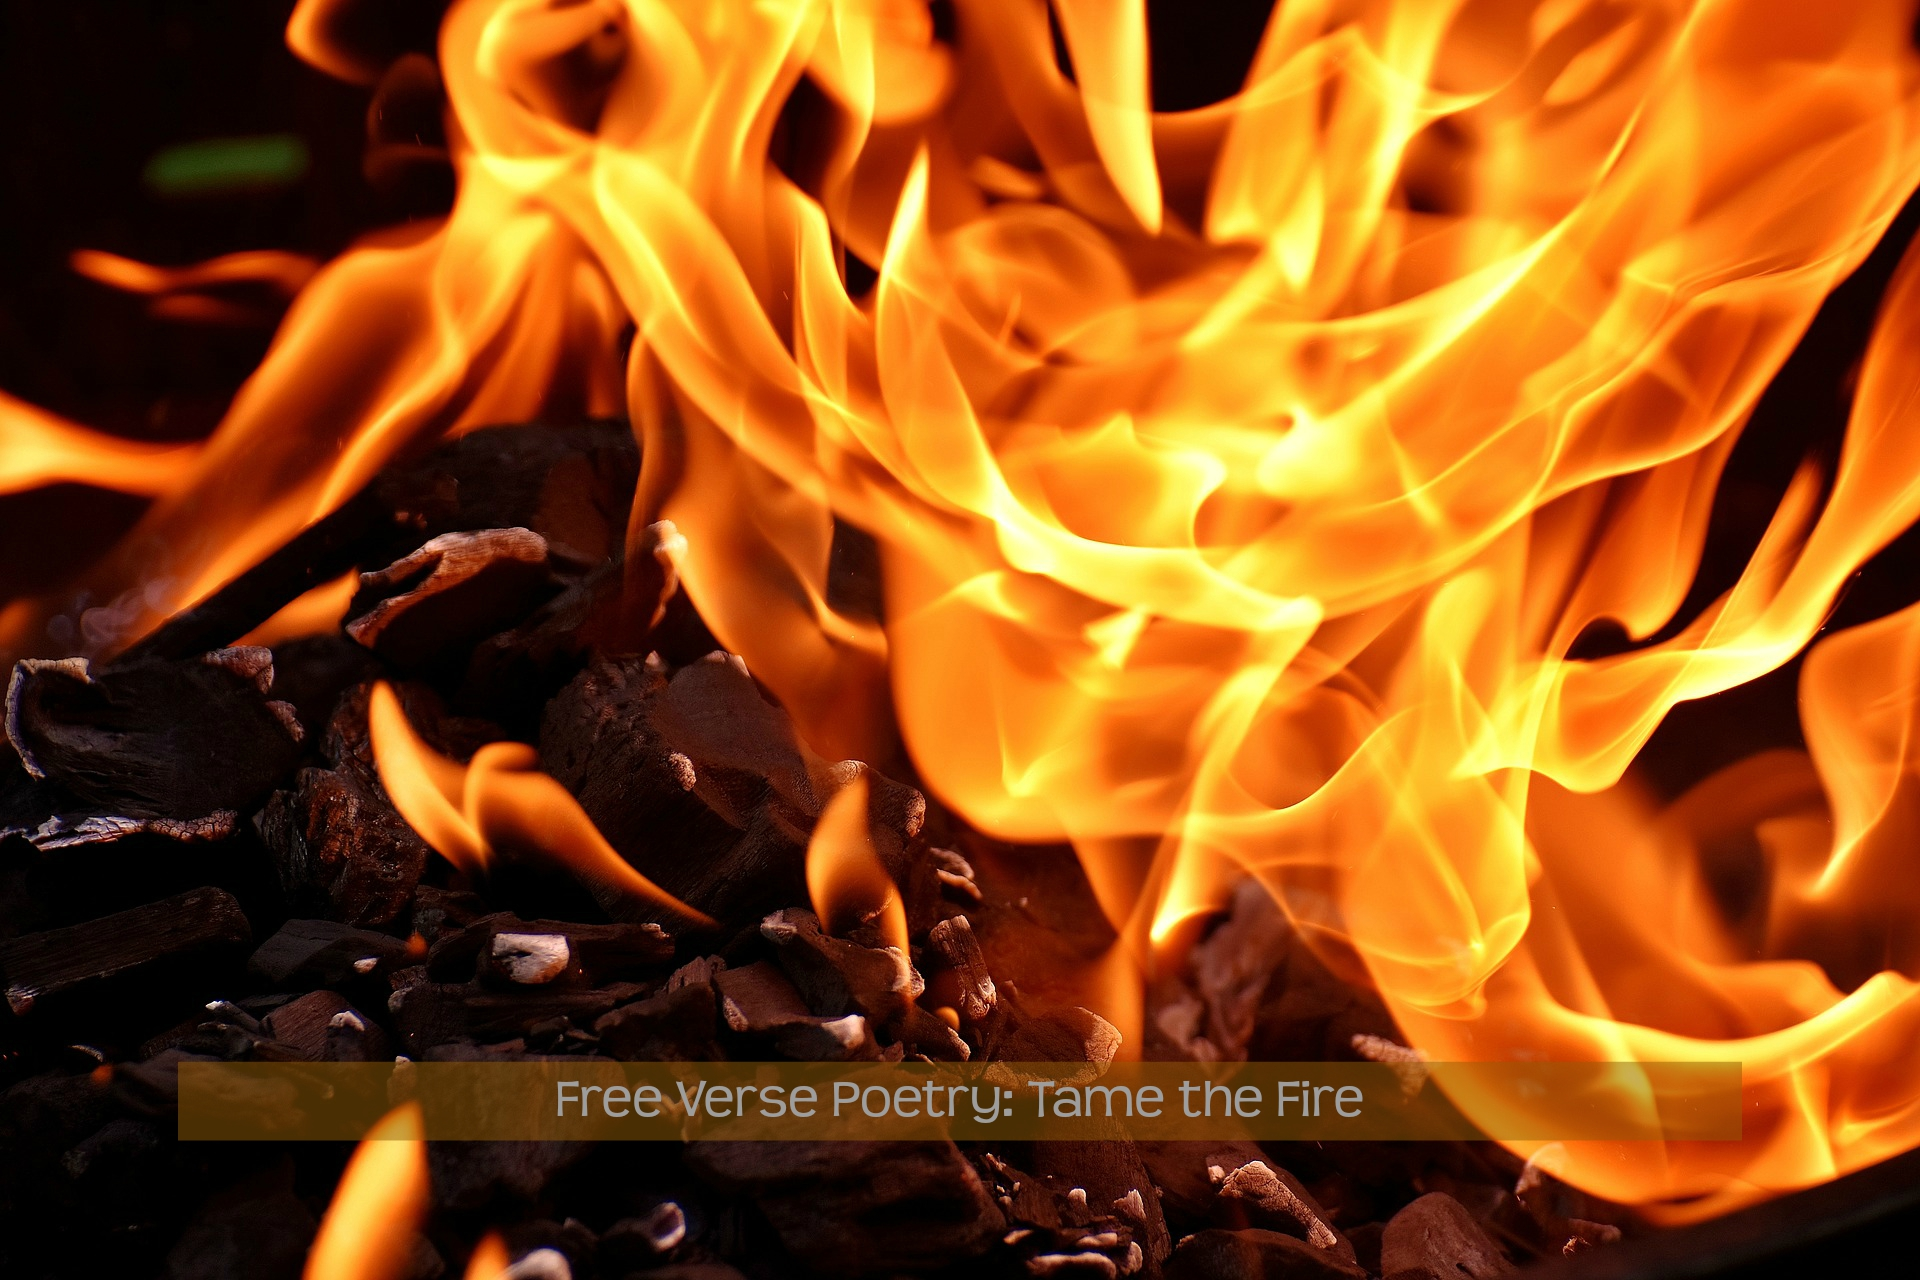 Free Verse Tame the Fire | Wolff Poetry - Publishing & Writing Tools